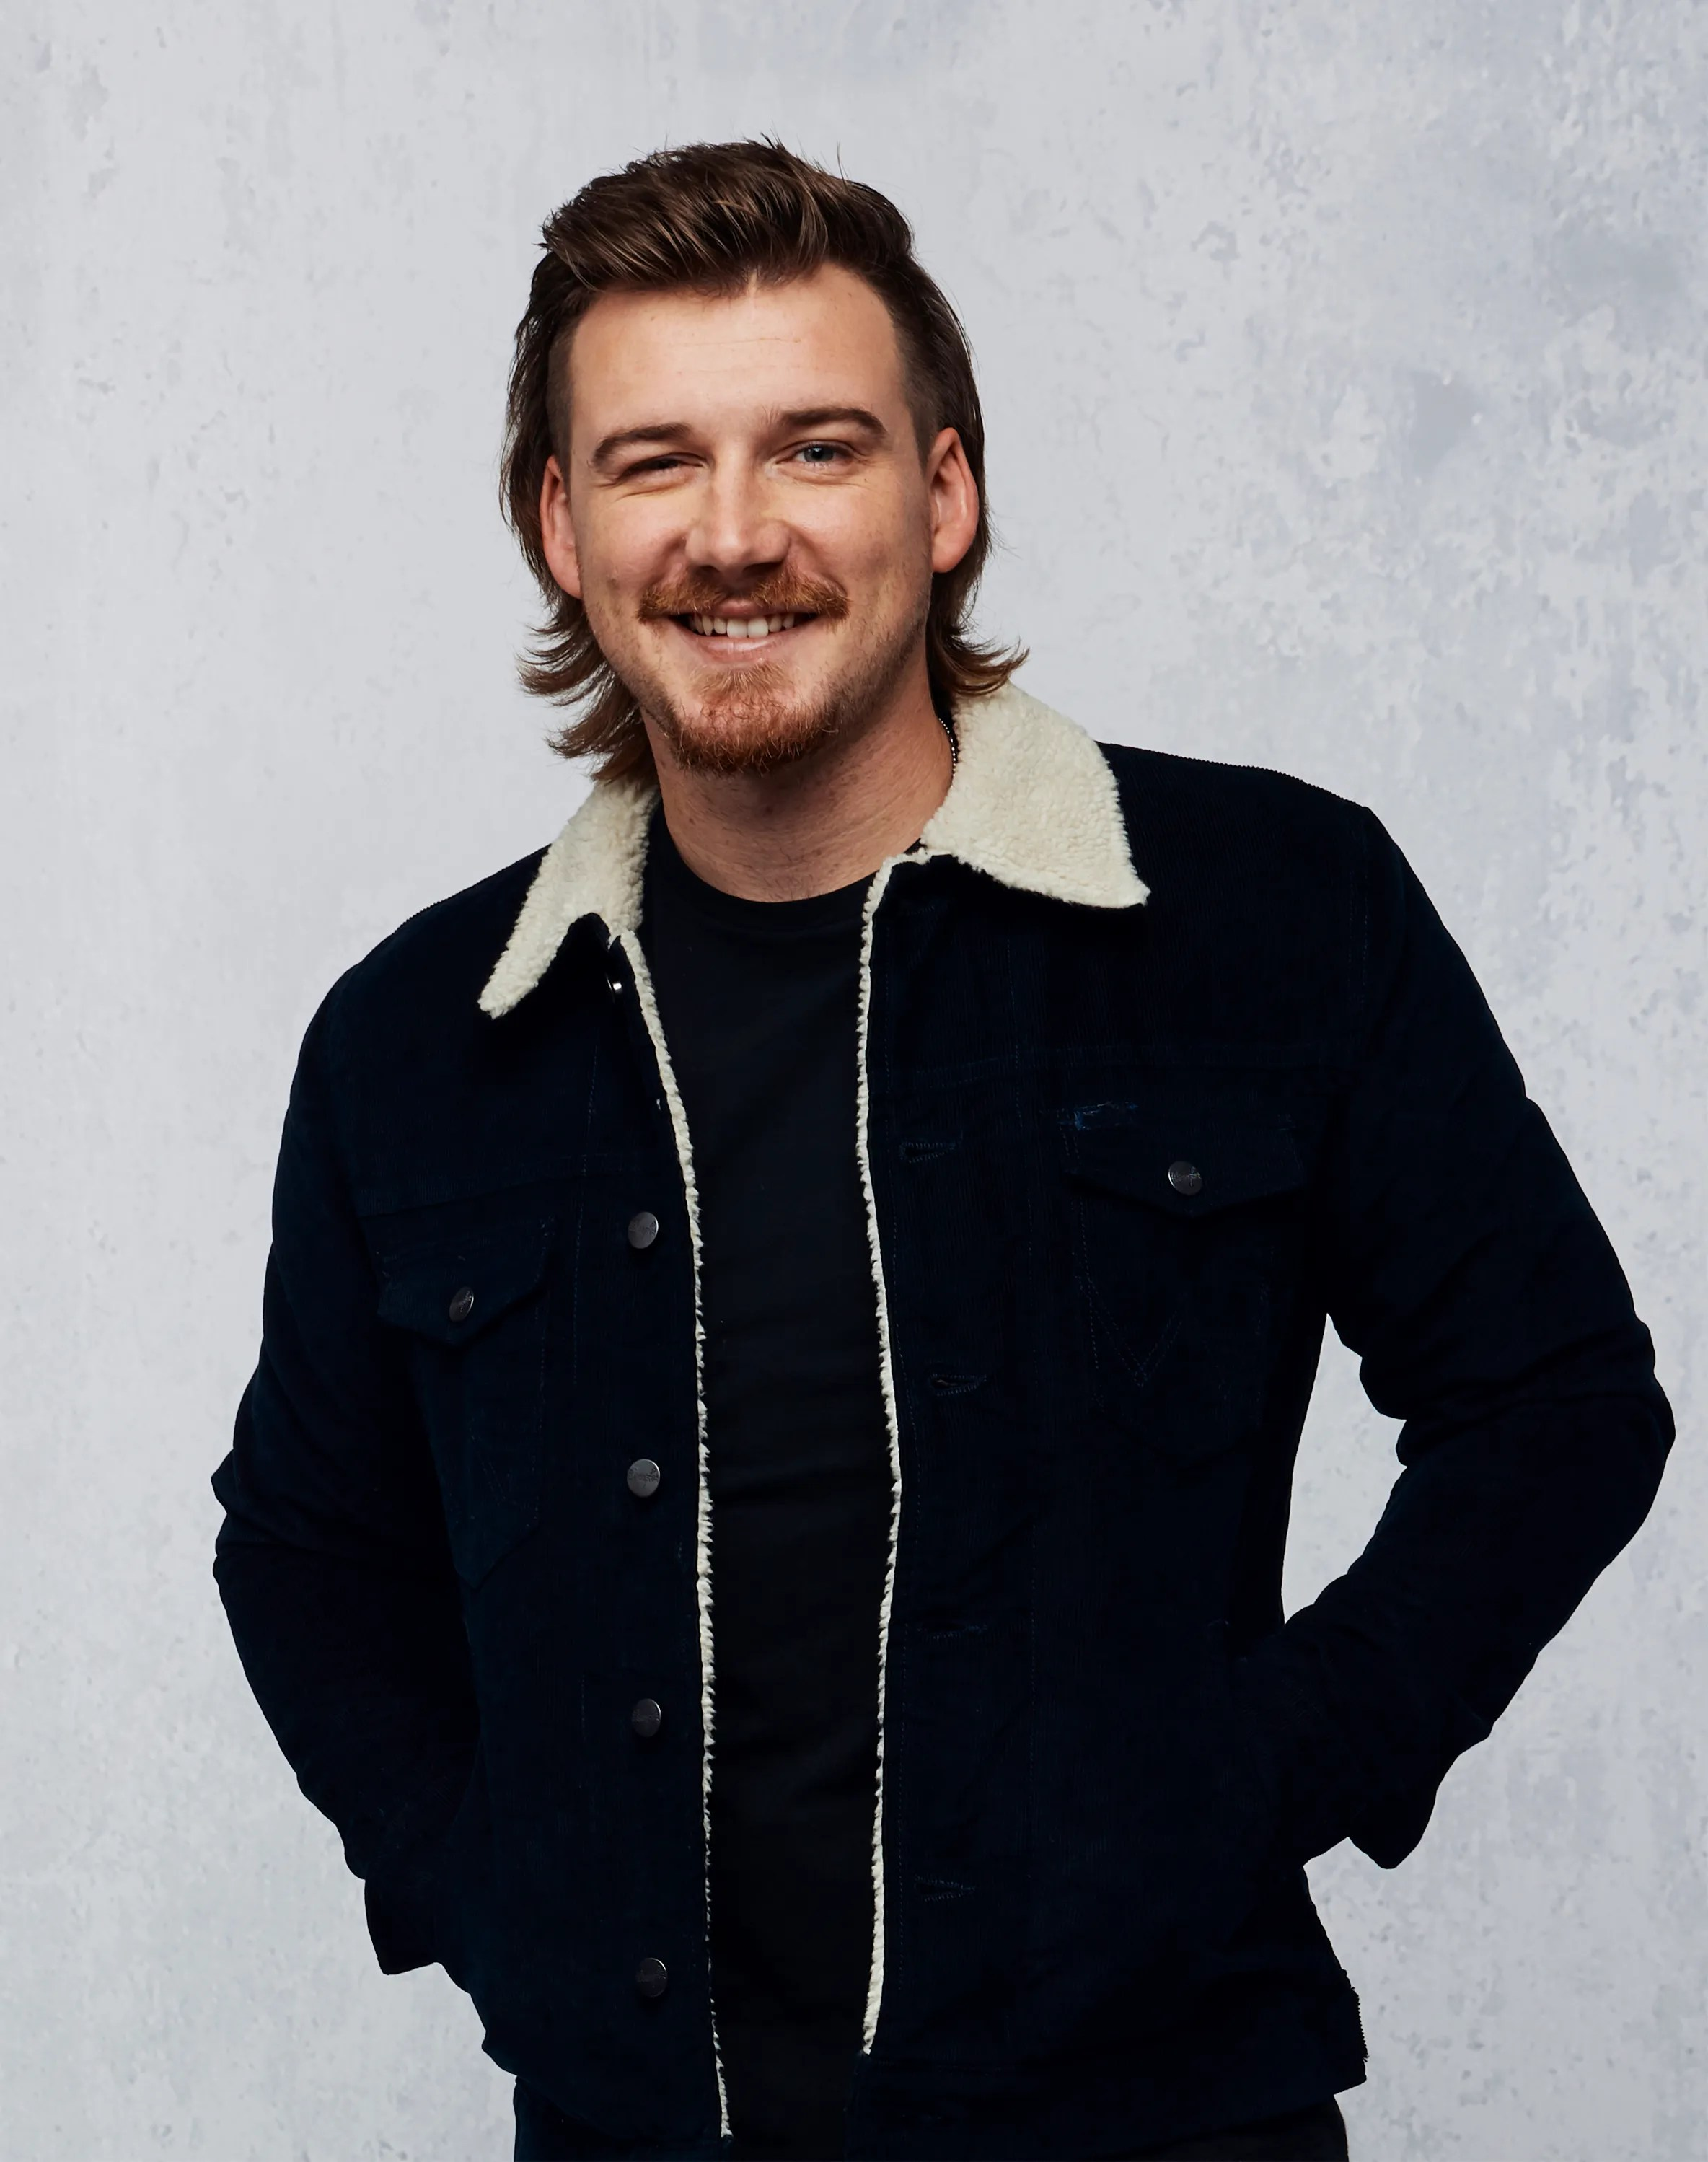 Morgan Wallen Talks Sold Out Shows 2019 Plans New Music